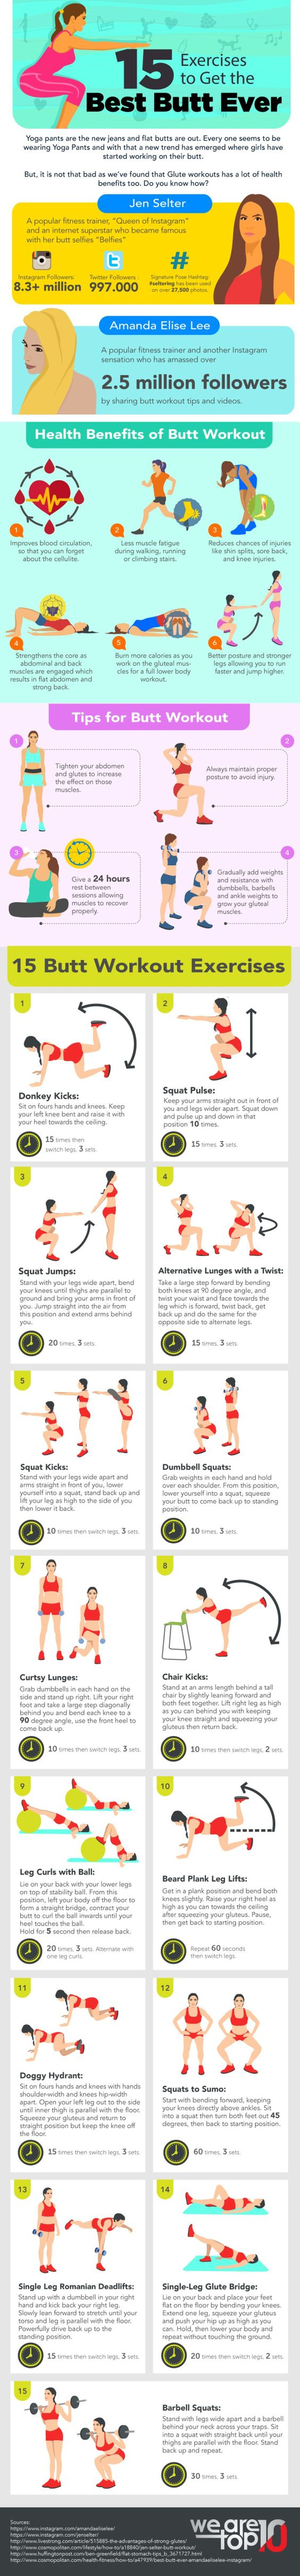 15 Exercises to Get the Best Butt Ever